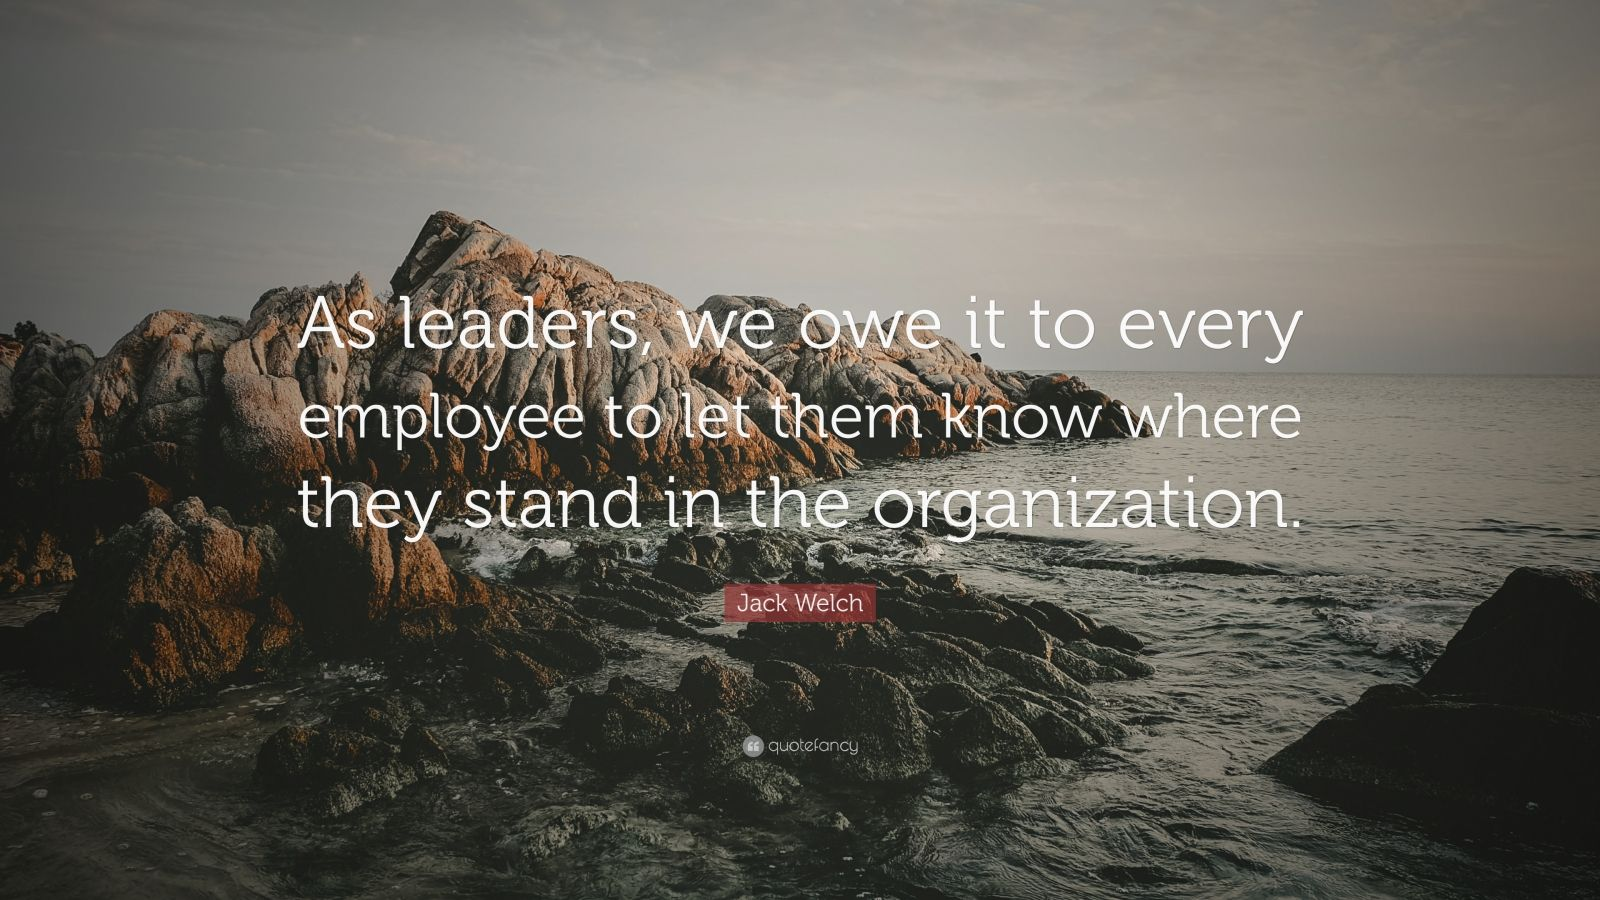 """Jack Welch Quote: """"As leaders, we owe it to every employee to let them know where they stand in the organization."""""""